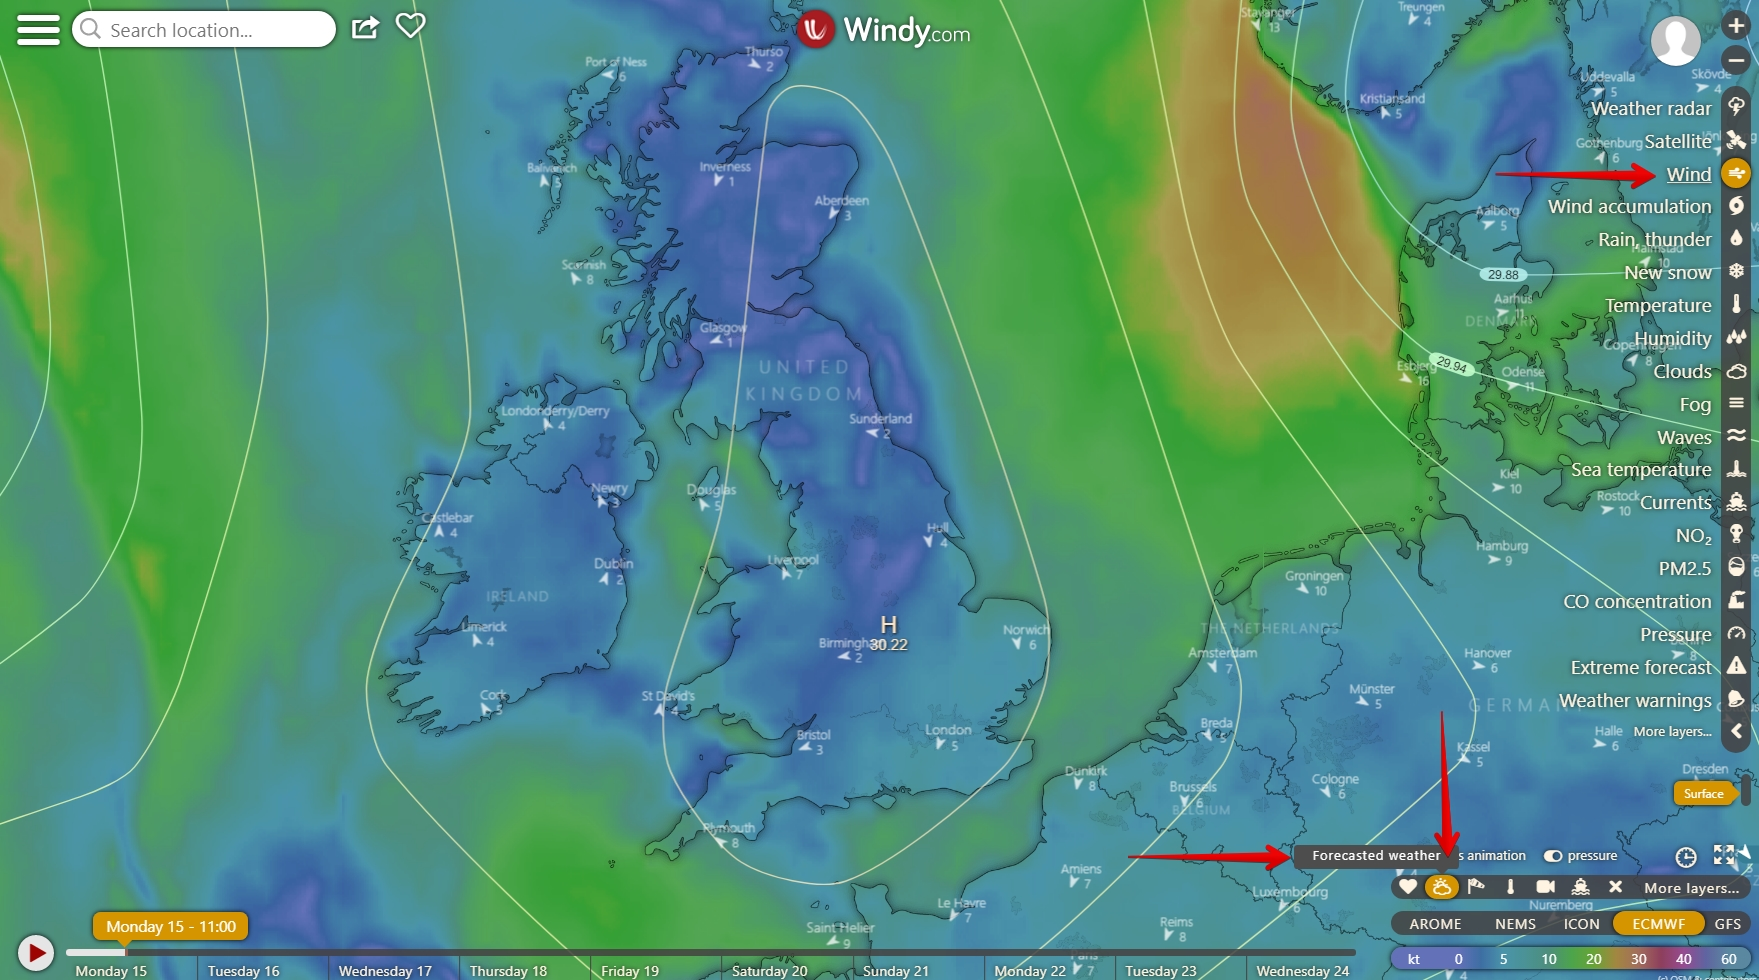 2019-07-15 10.46.31 - Windy_ Wind map & weather forecast - Google Chrome.jpg